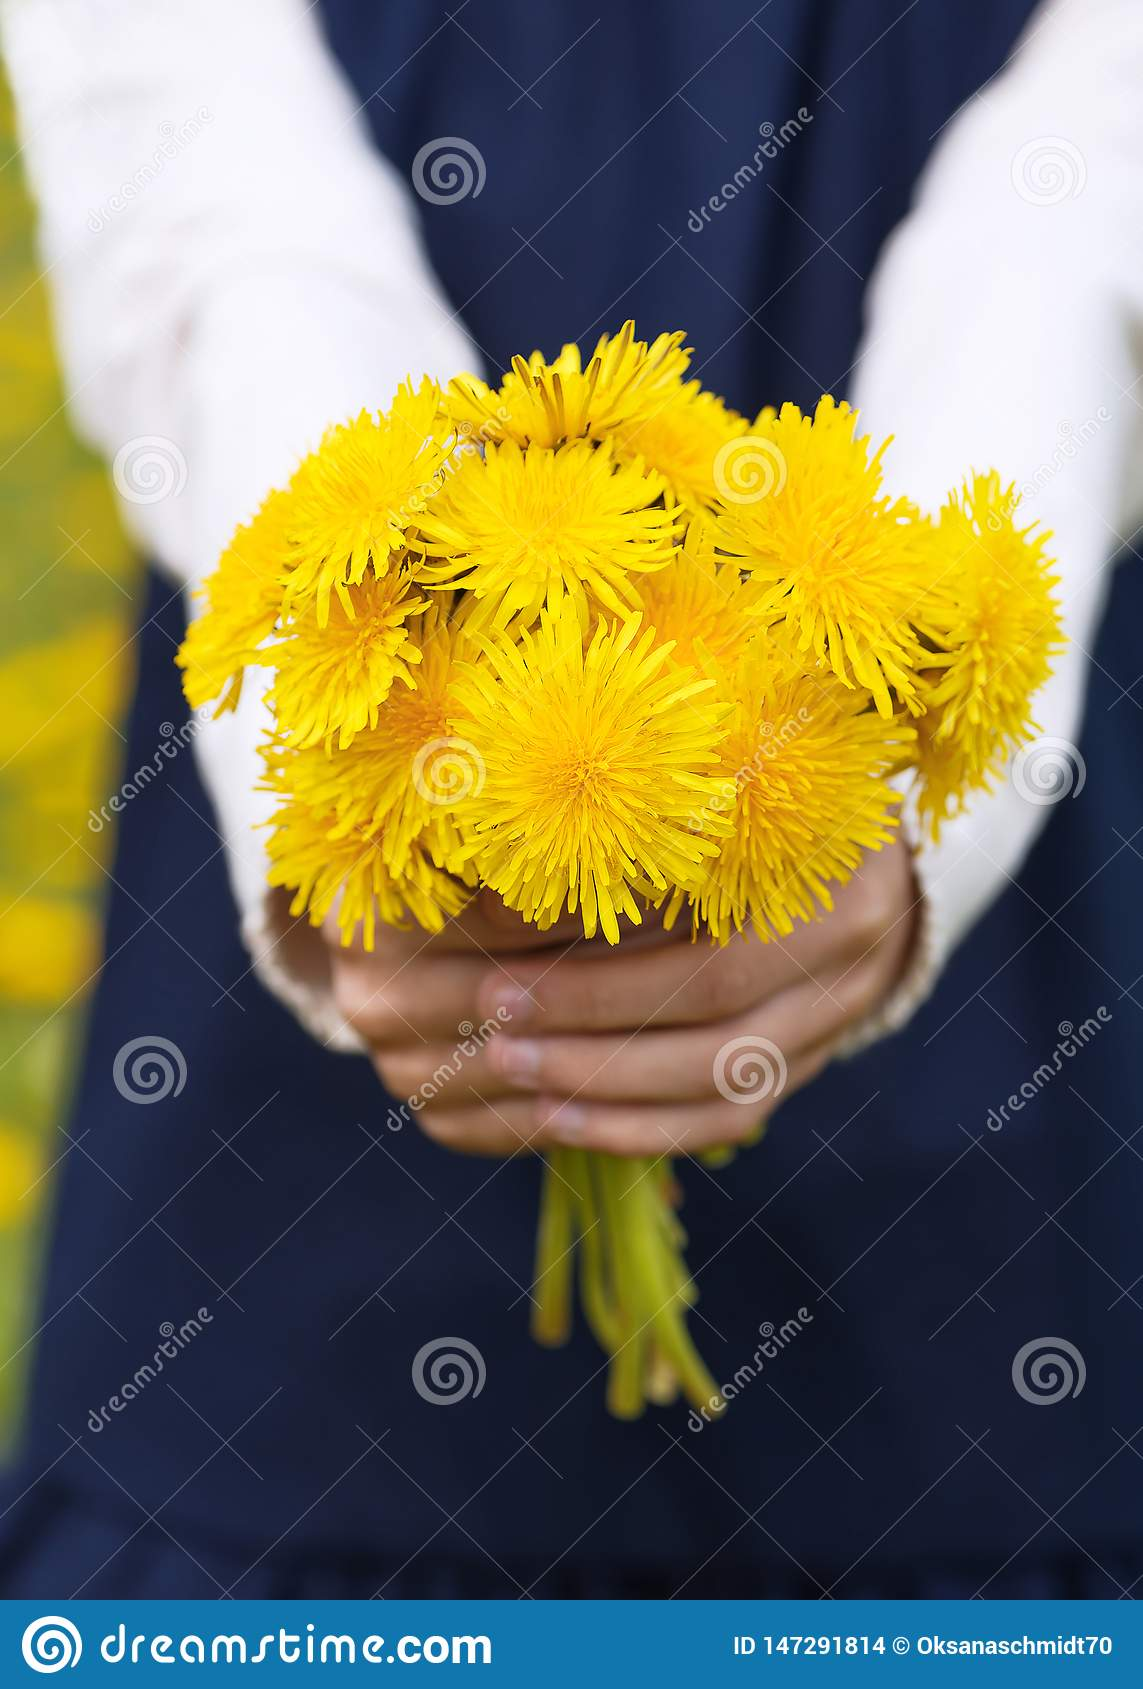 Girl`s hands holding a bouquet of bright yellow dandelions.